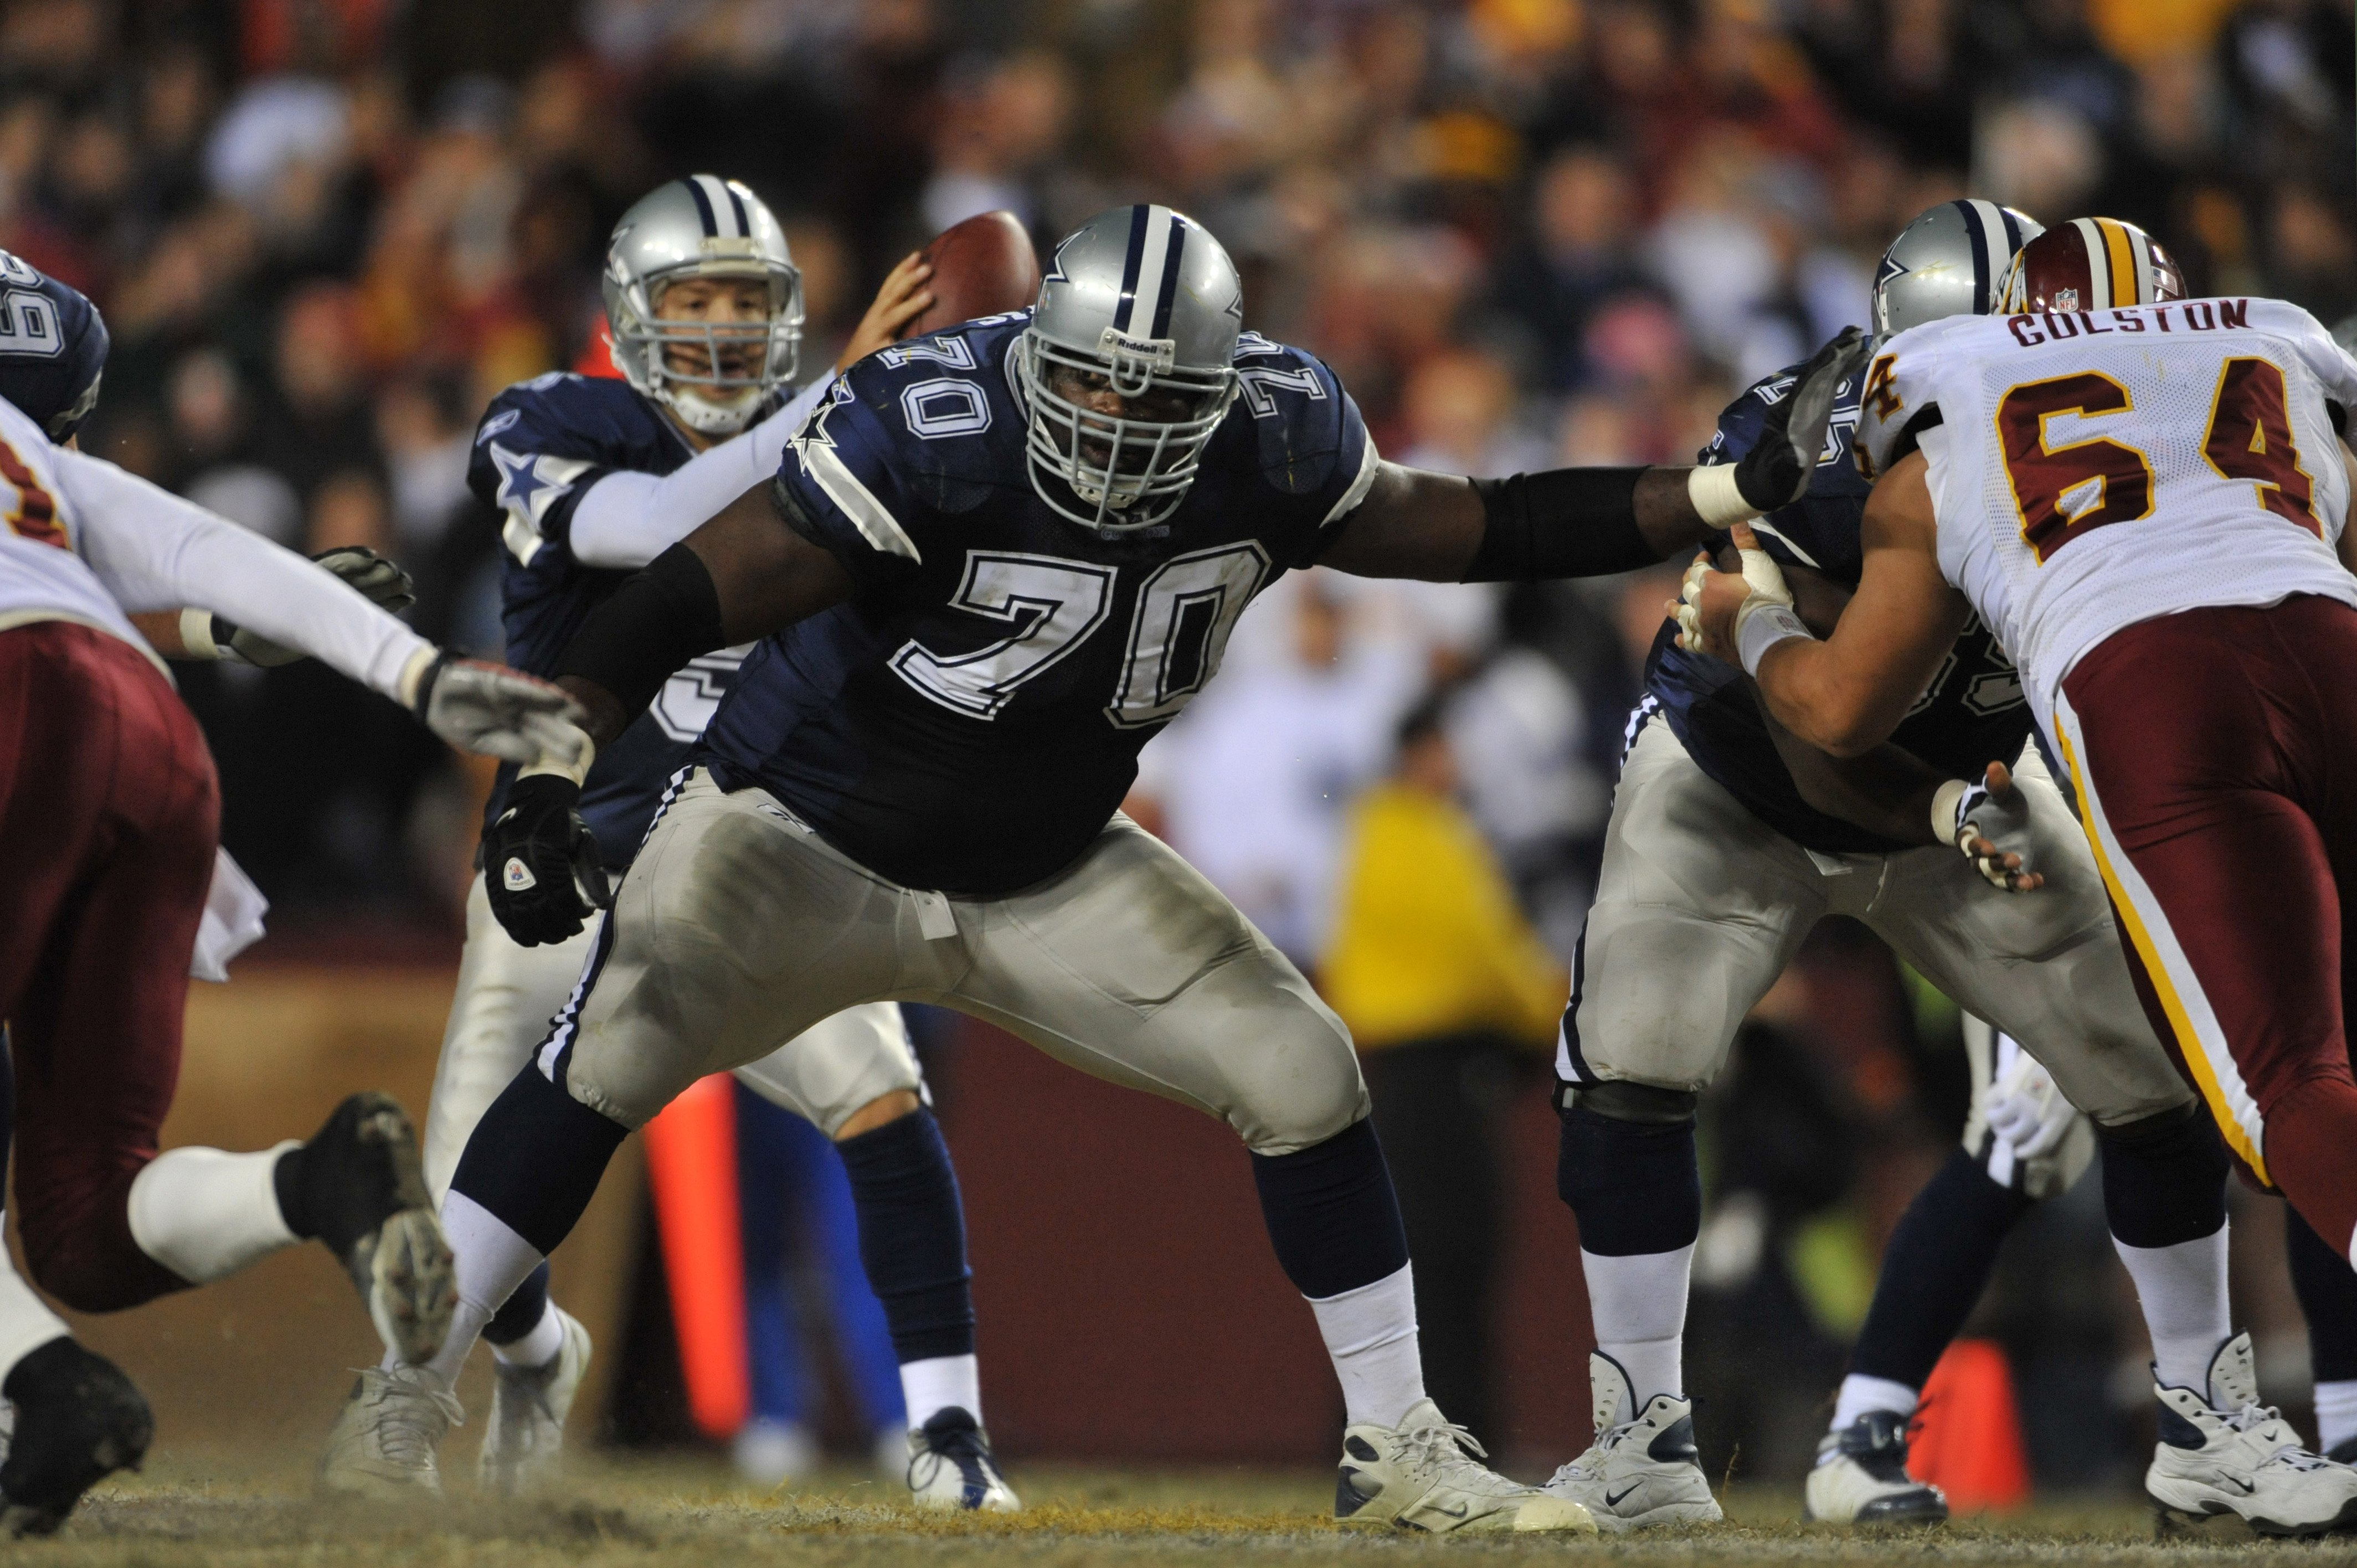 LANDOVER, MD - DECEMBER 27:  Leonard Davis #70 of the Dallas Cowboys defends against the Washington Redskins at FedExField on December 27, 2009 in Landover, Maryland. The Cowboys defeated the Redskins 17-0. (Photo by Larry French/Getty Images)